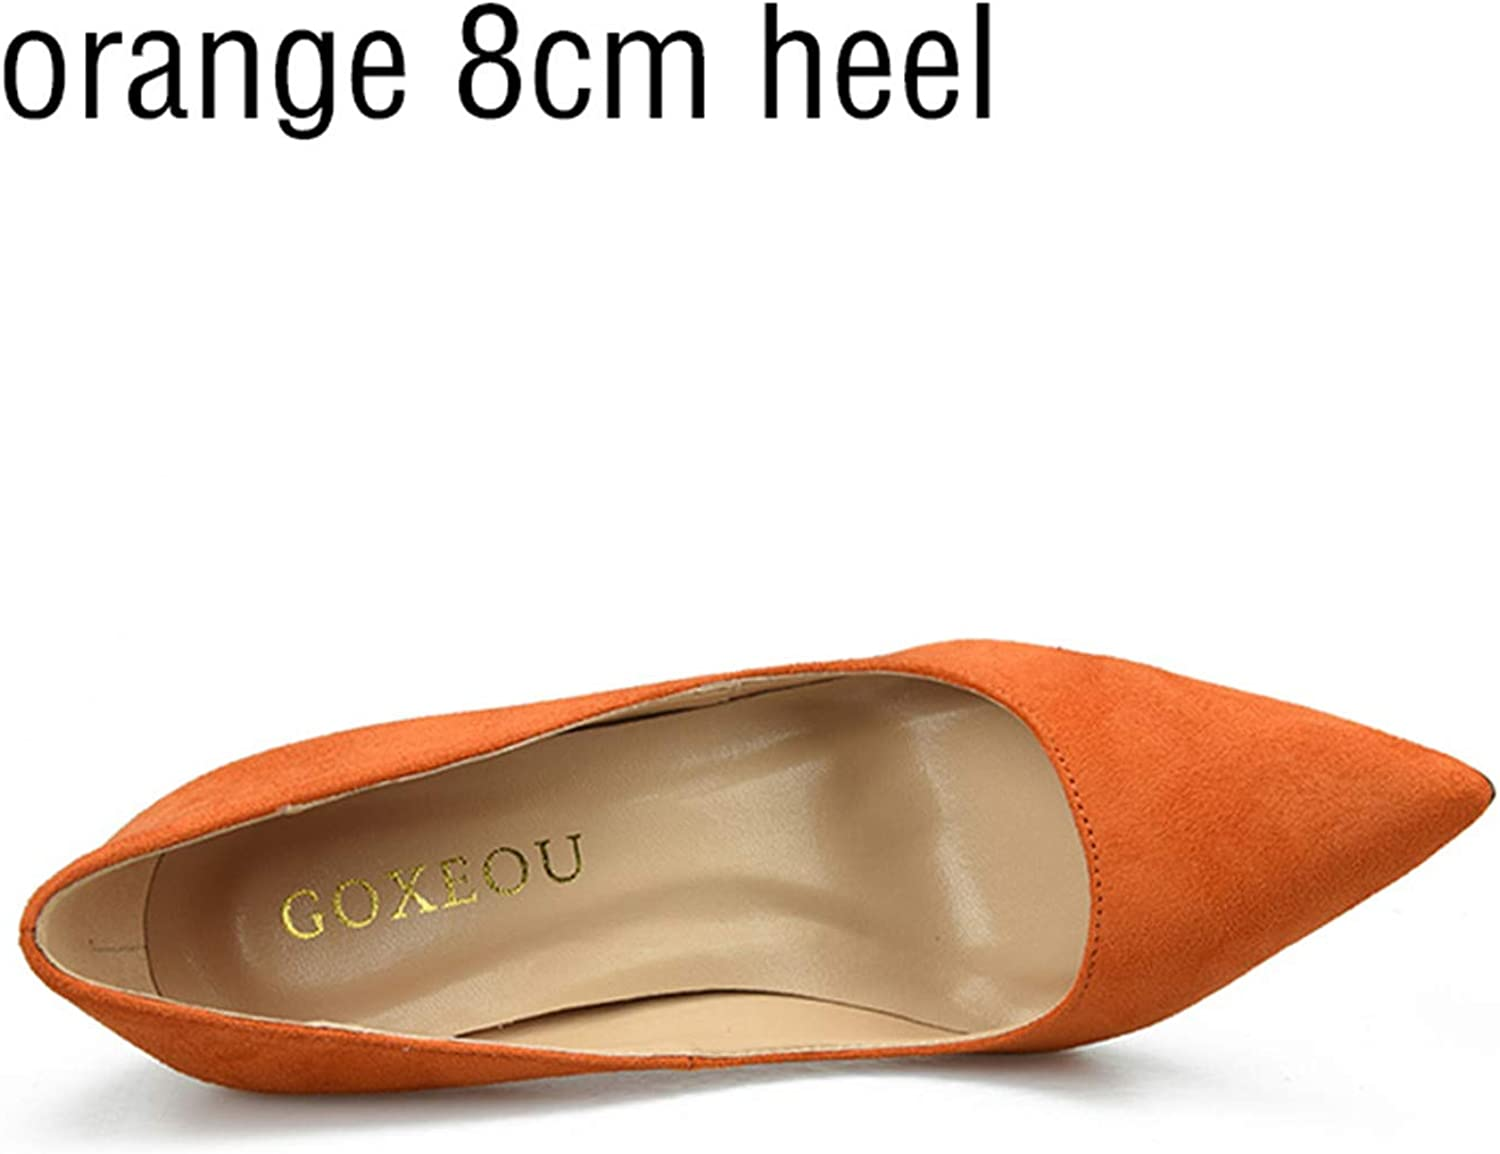 10Cm Pointed Toe Stiletto Heels Pumps Ladies Stylish High Heels shoes